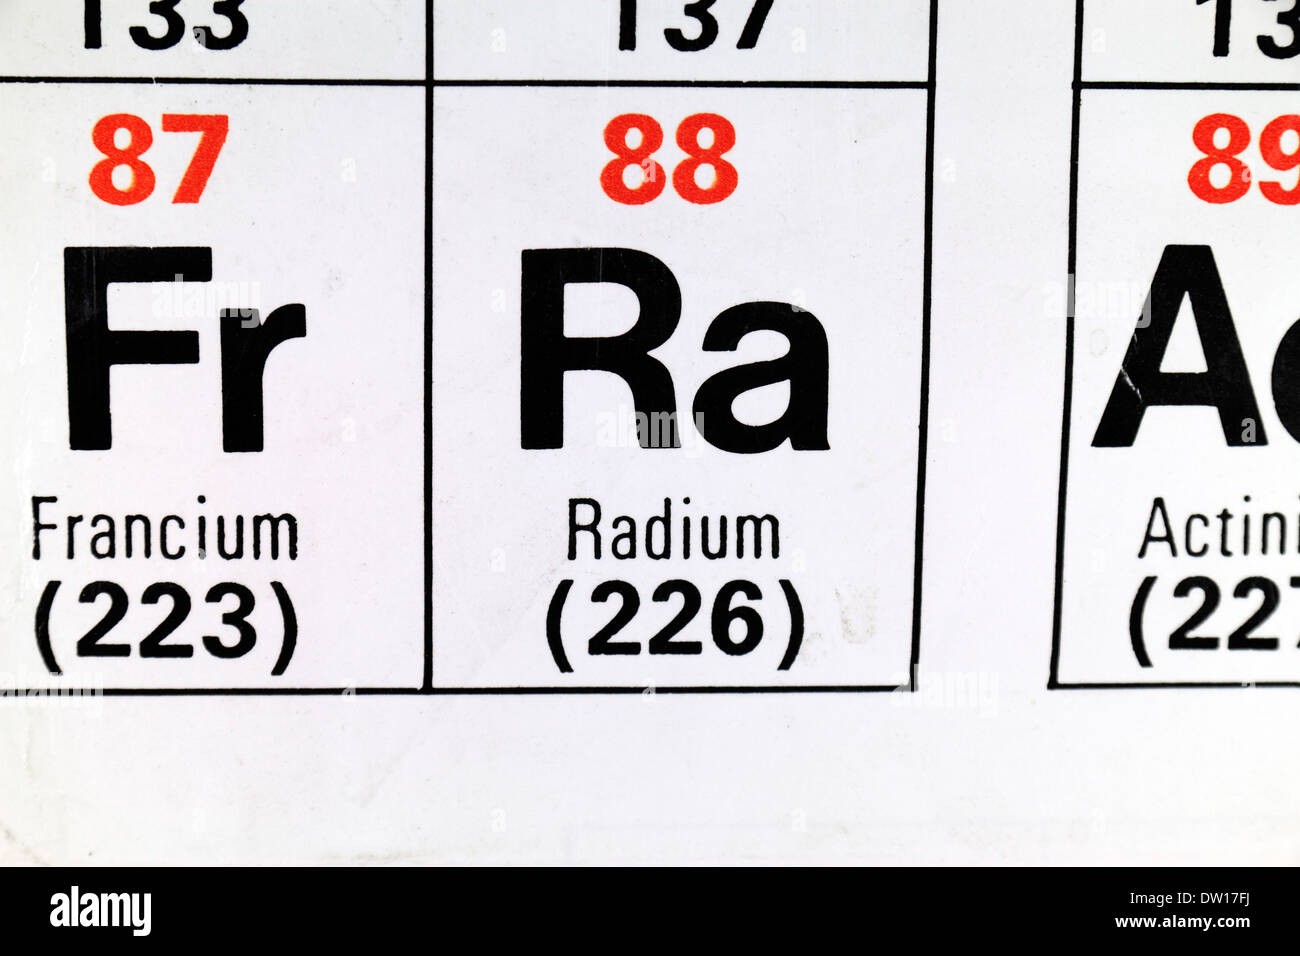 Radium ra as it appears on the periodic table stock photo radium ra as it appears on the periodic table gamestrikefo Images